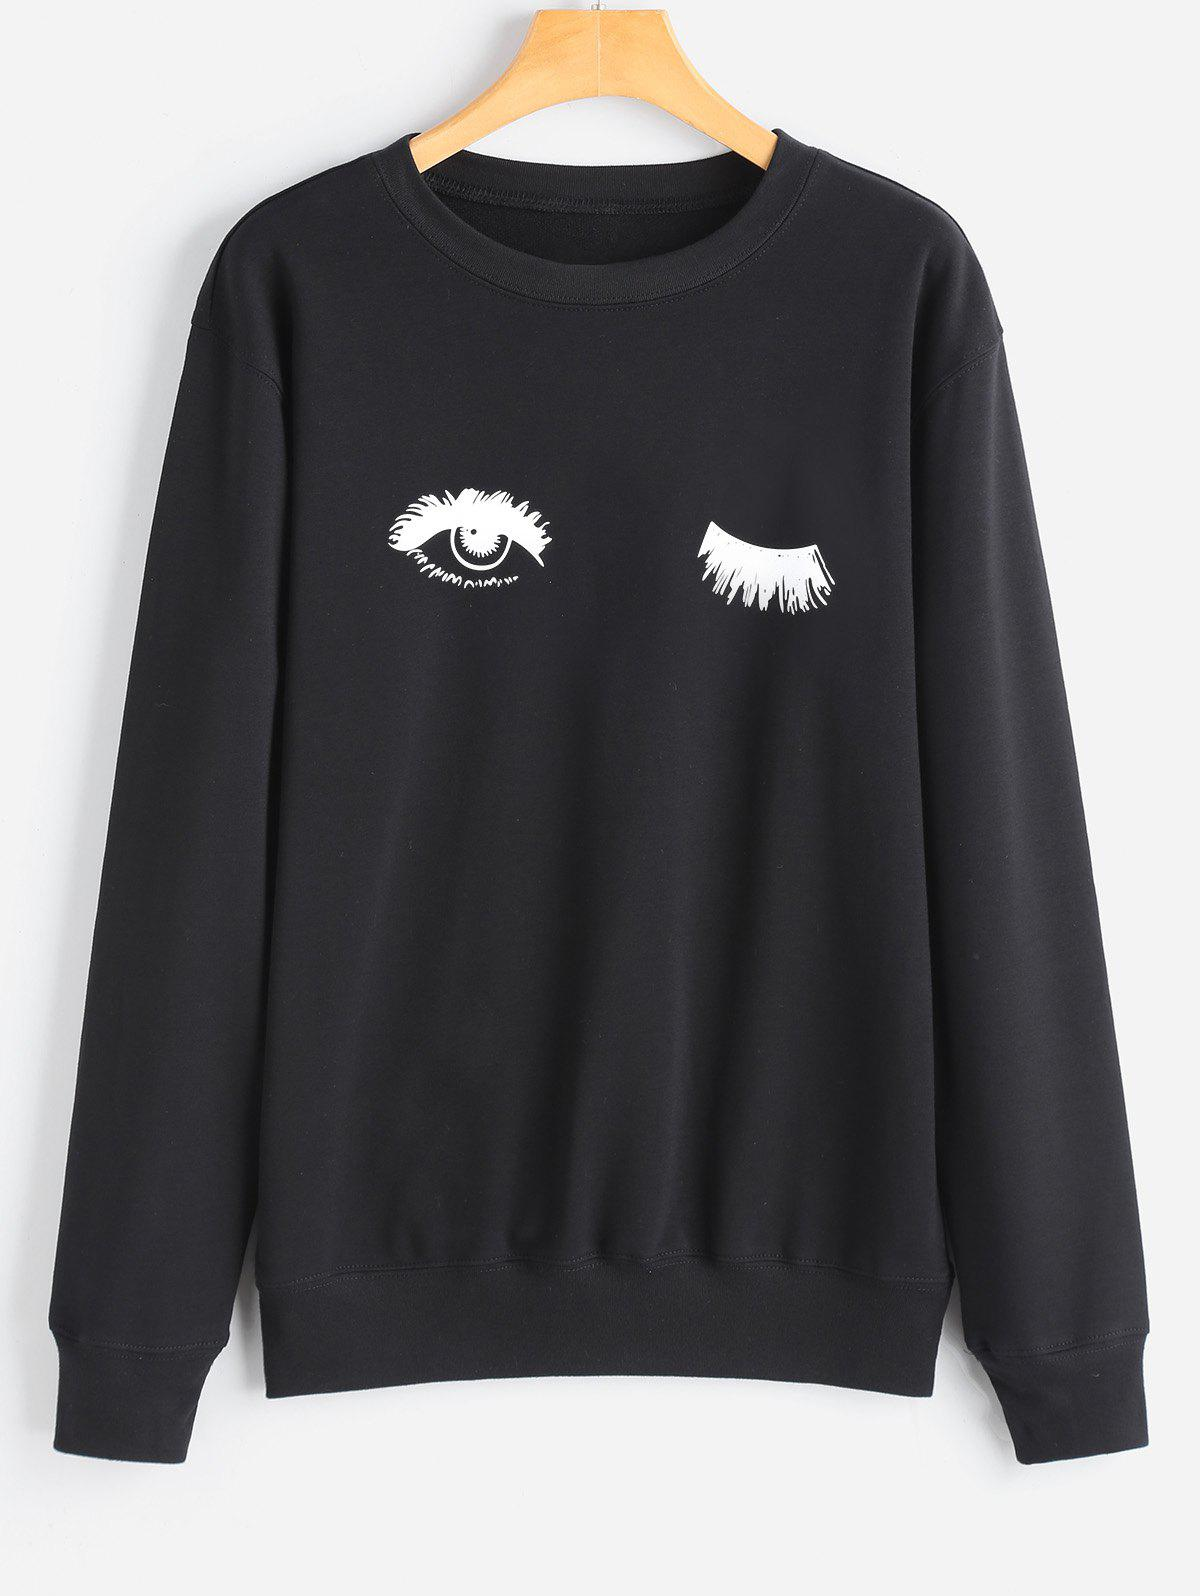 Discount Eye Print Sweatshirt